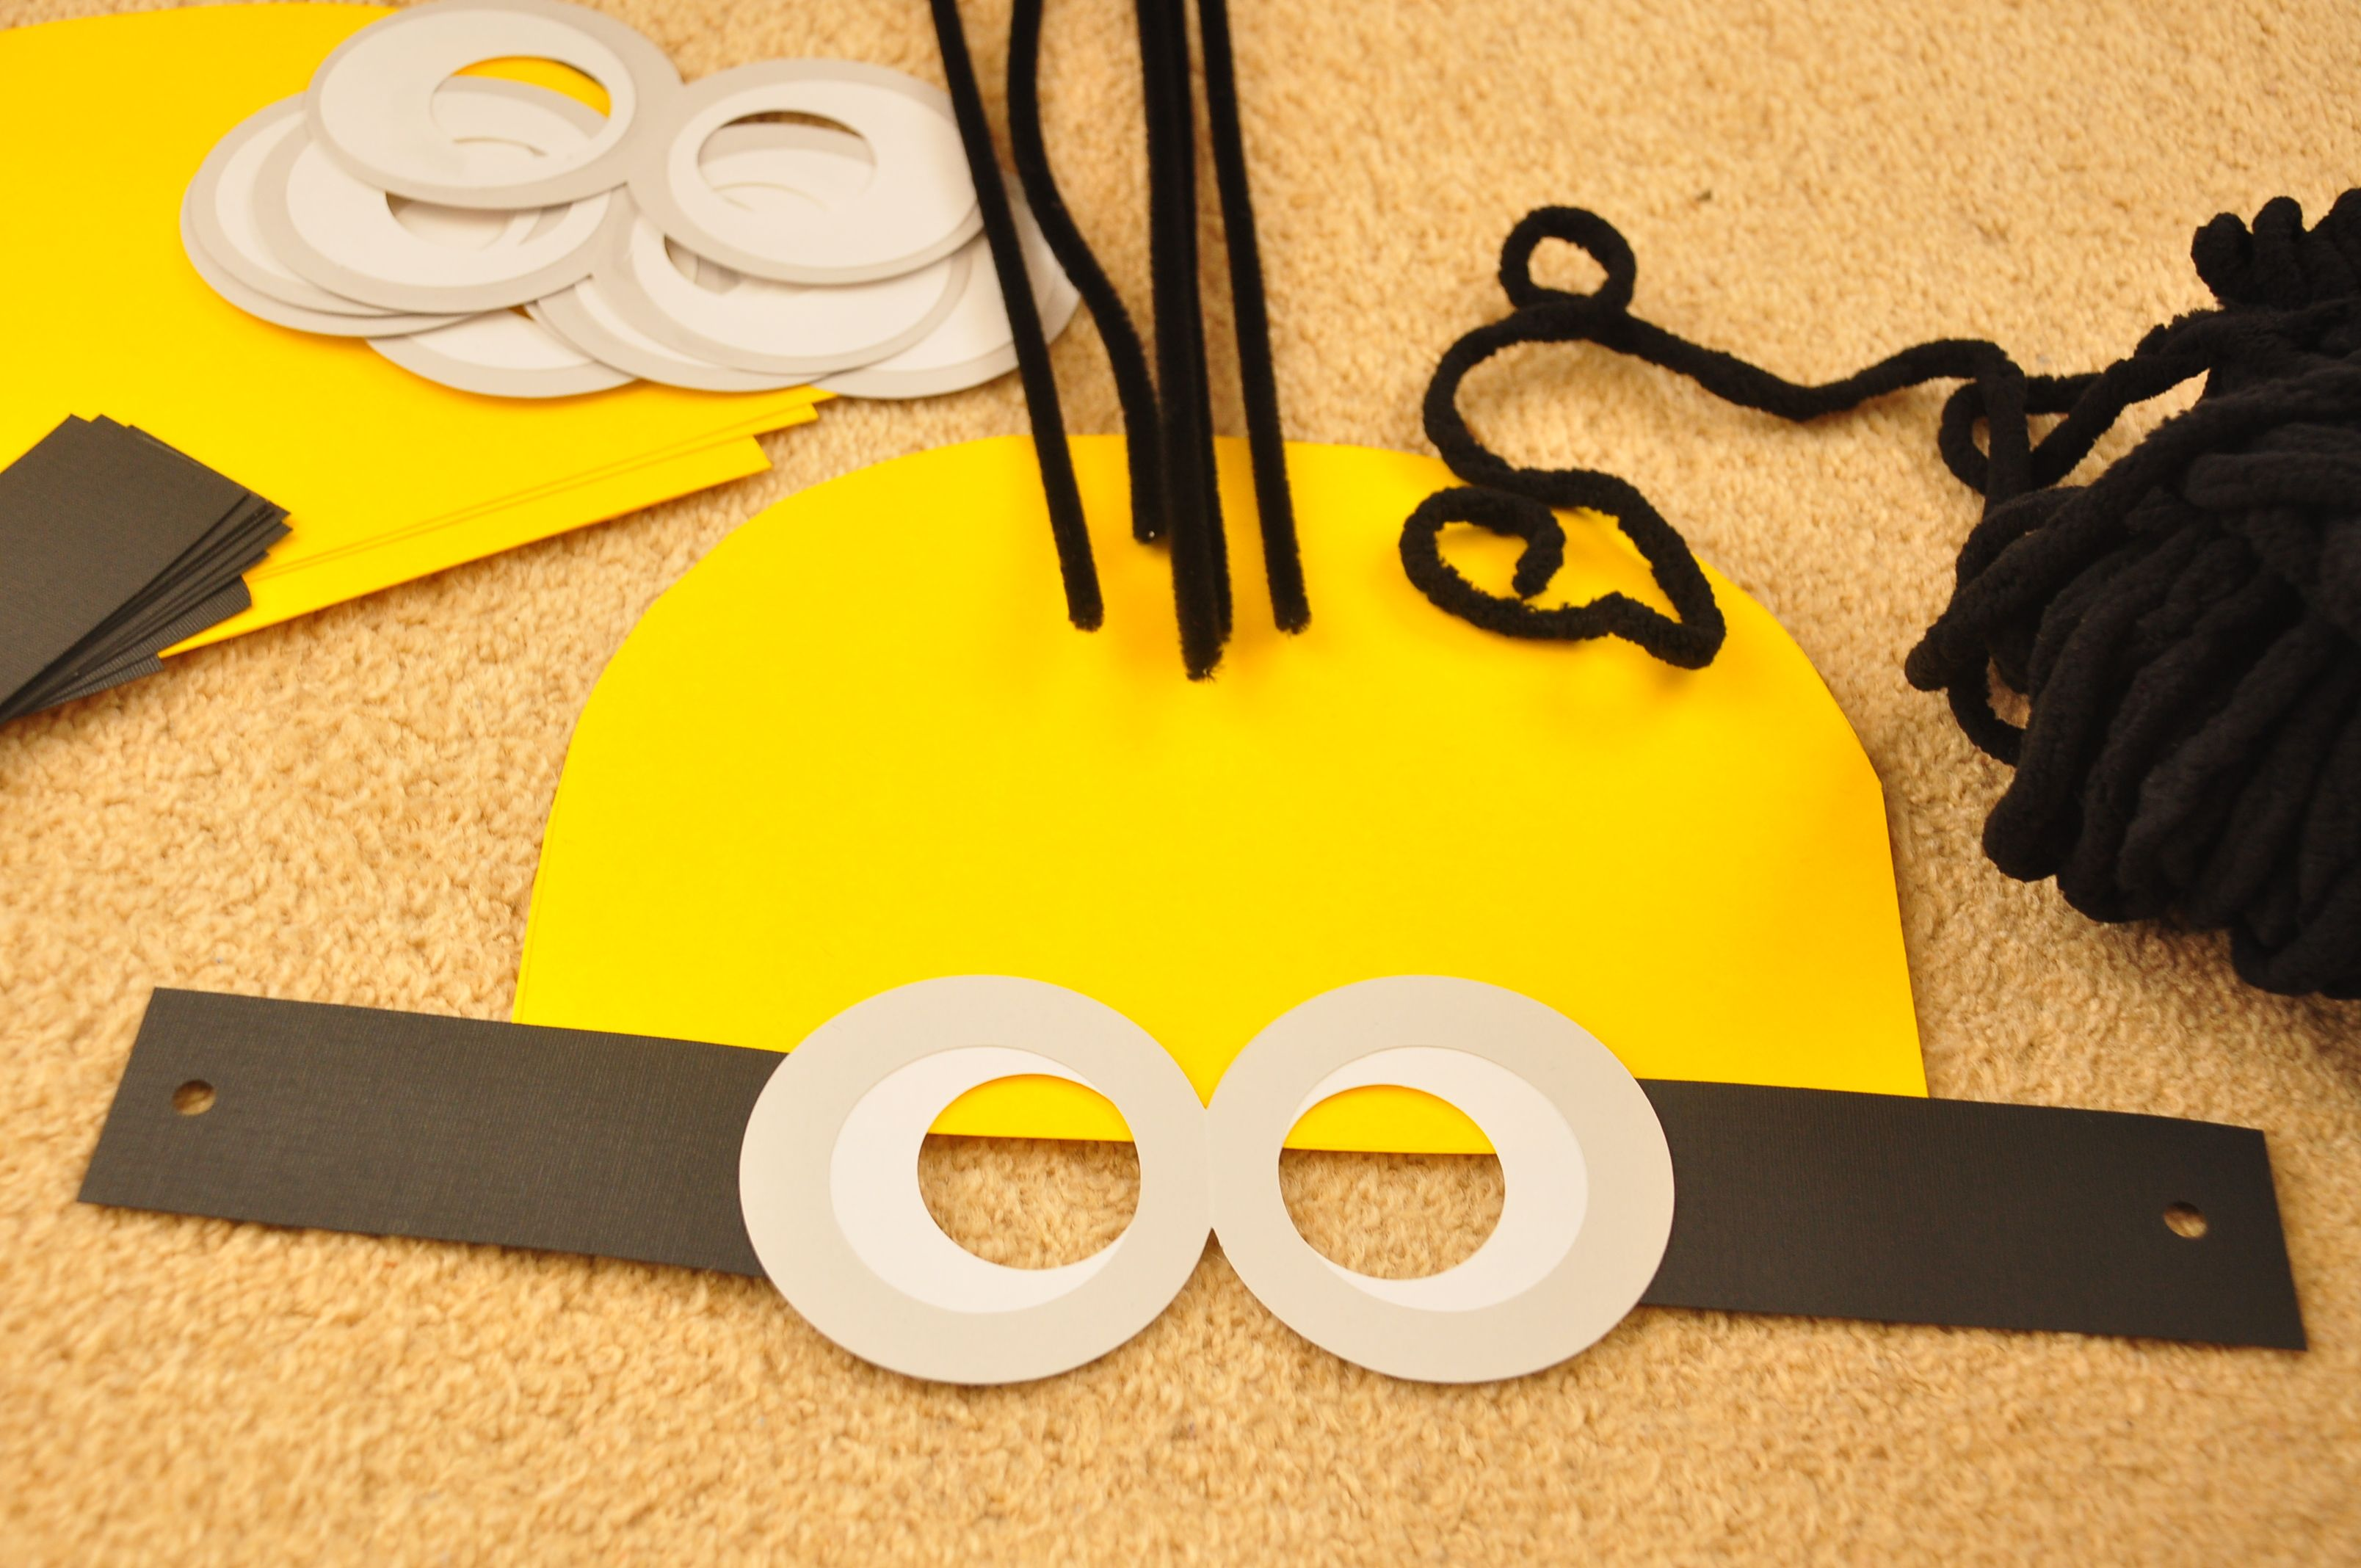 Crafts For Kids Minion Face Mask A Little Prep Work Ahead Of Time Made This An Easy Craft For